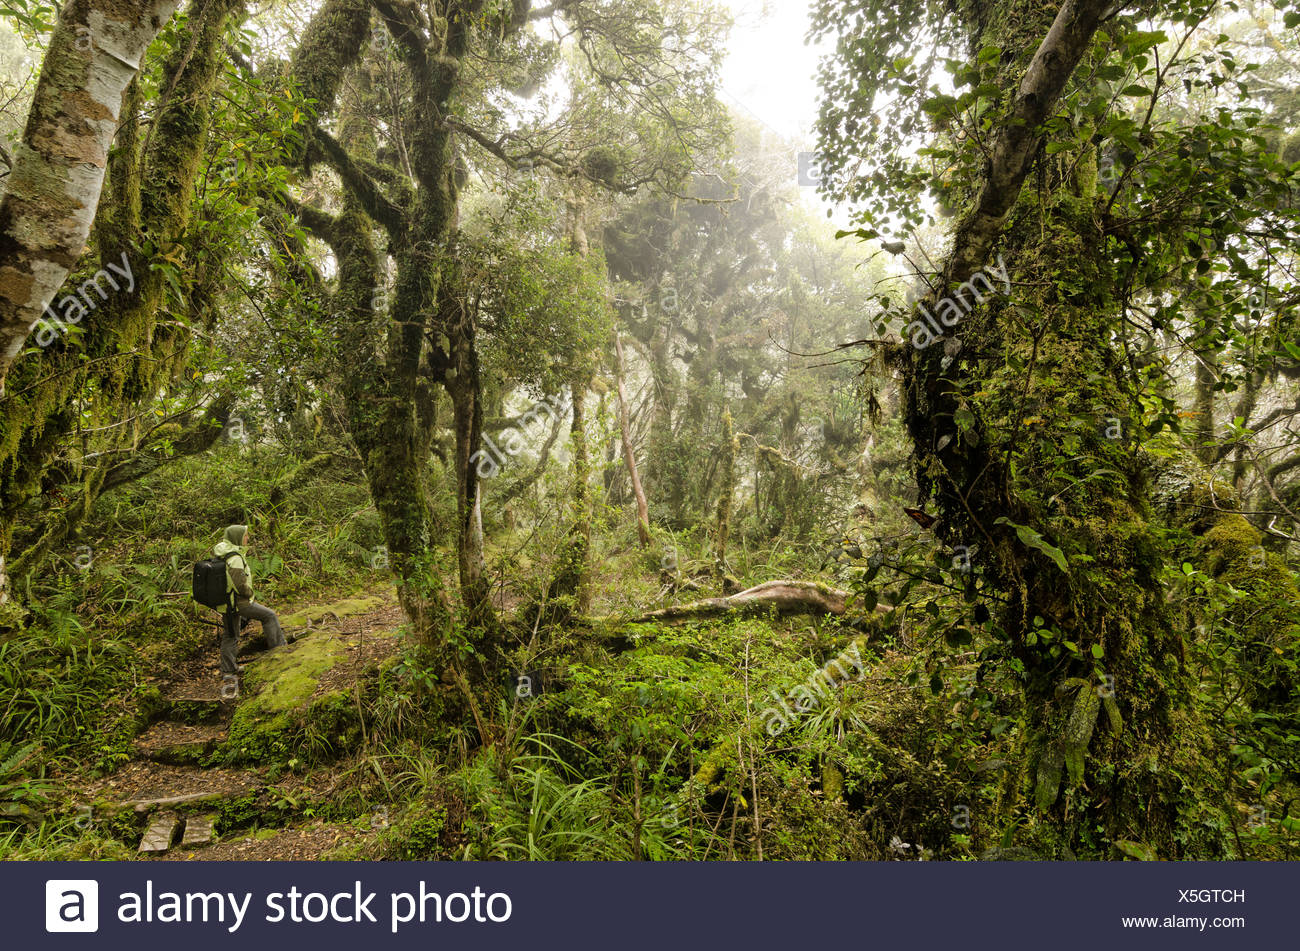 Female hiker carrying a backpack in the rain forest, hiking path in the Egmont National Park, North Island, New Zealand - Stock Image